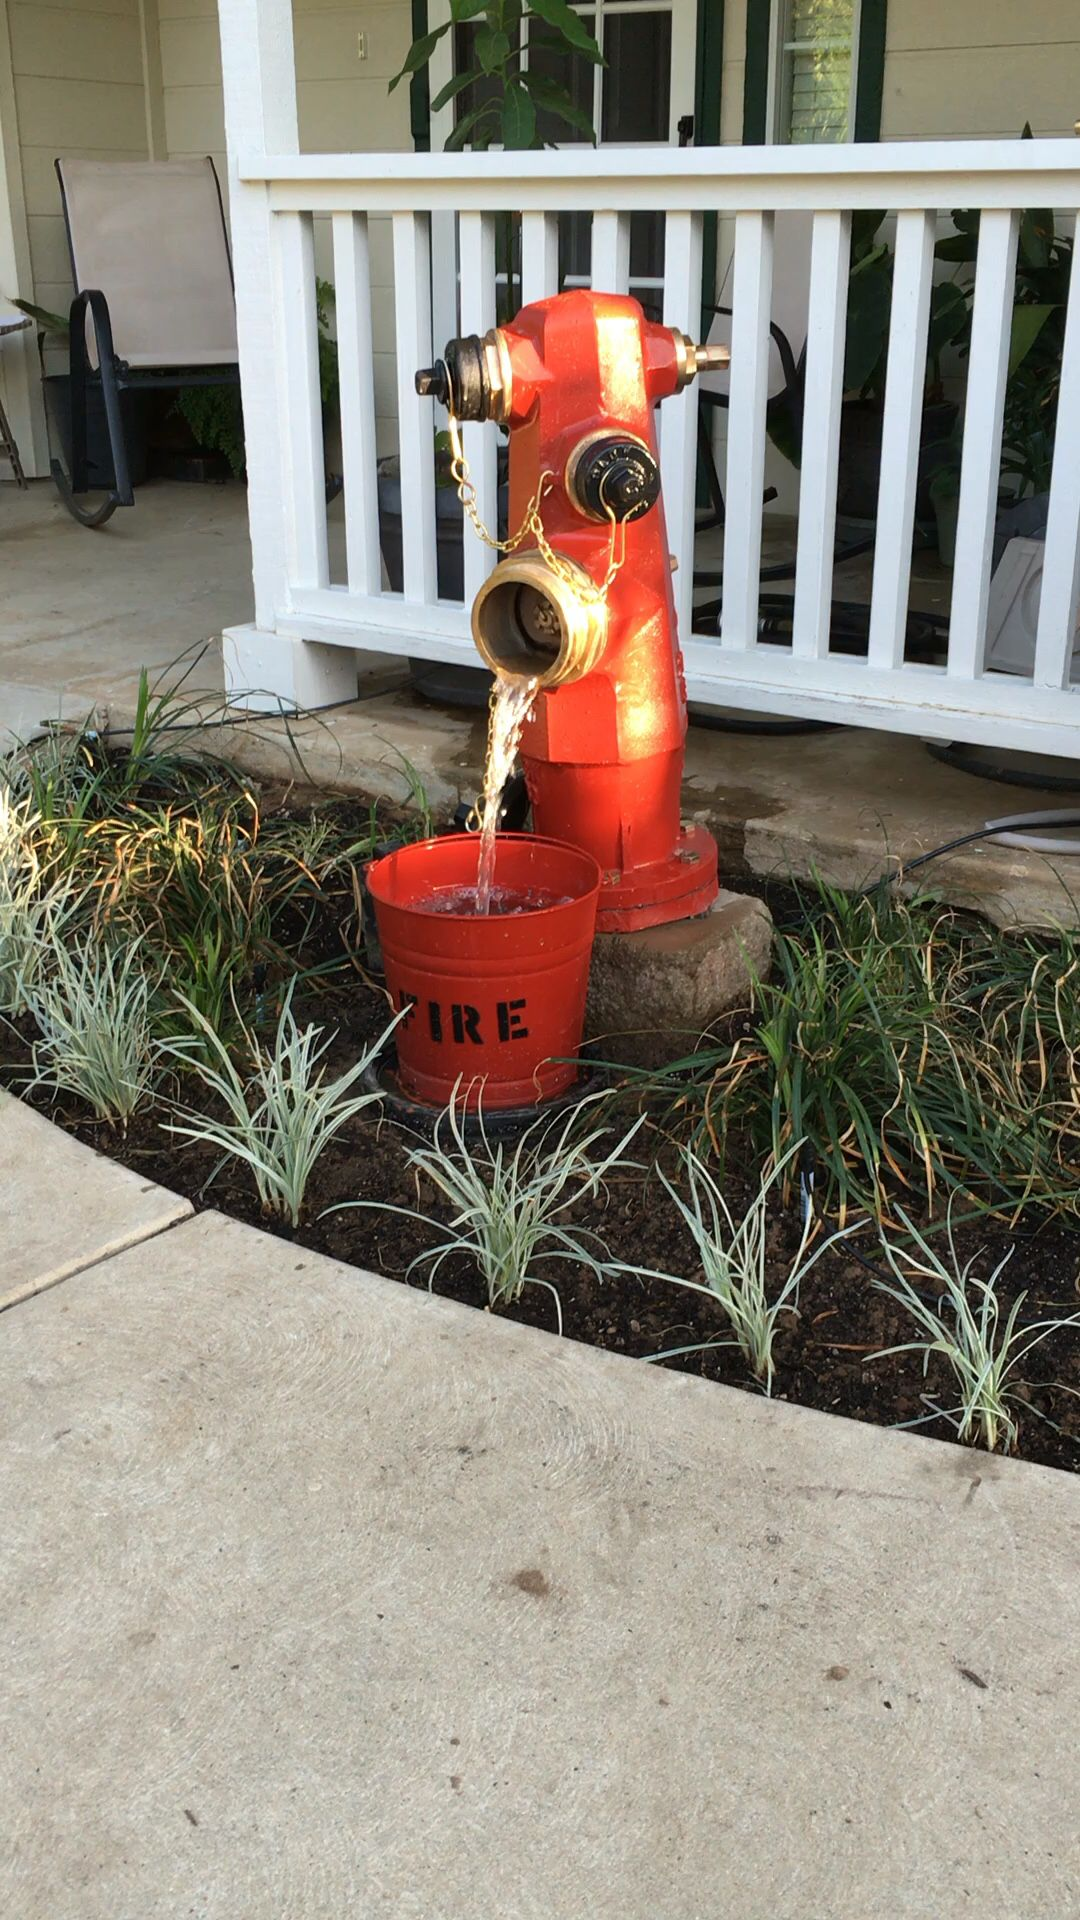 How To Effectively Deal With Pond Fish Problems Fire Dept Decor